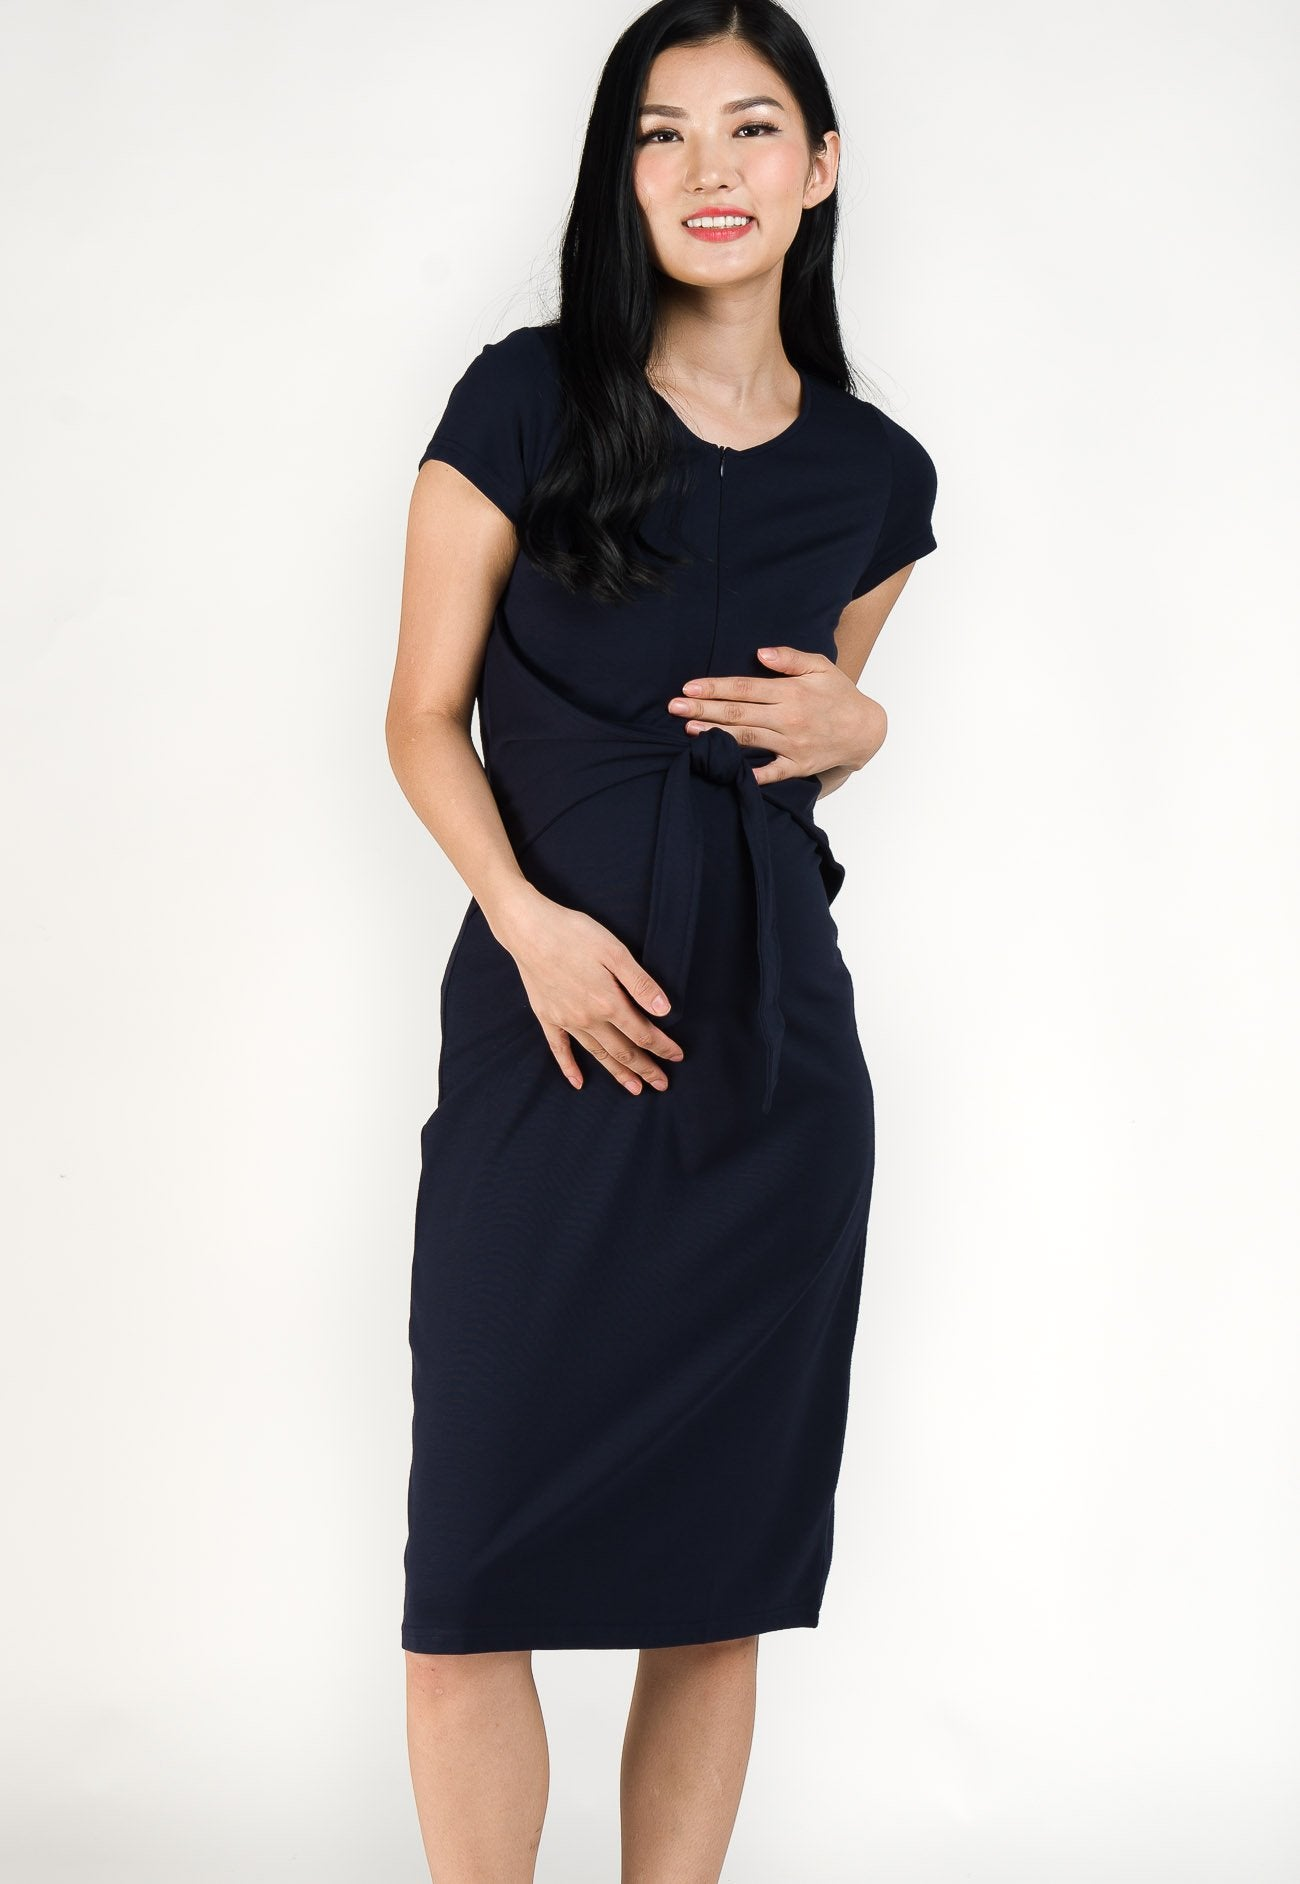 Camille Front Tie Nursing Dress in Navy  by Jump Eat Cry - Maternity and nursing wear